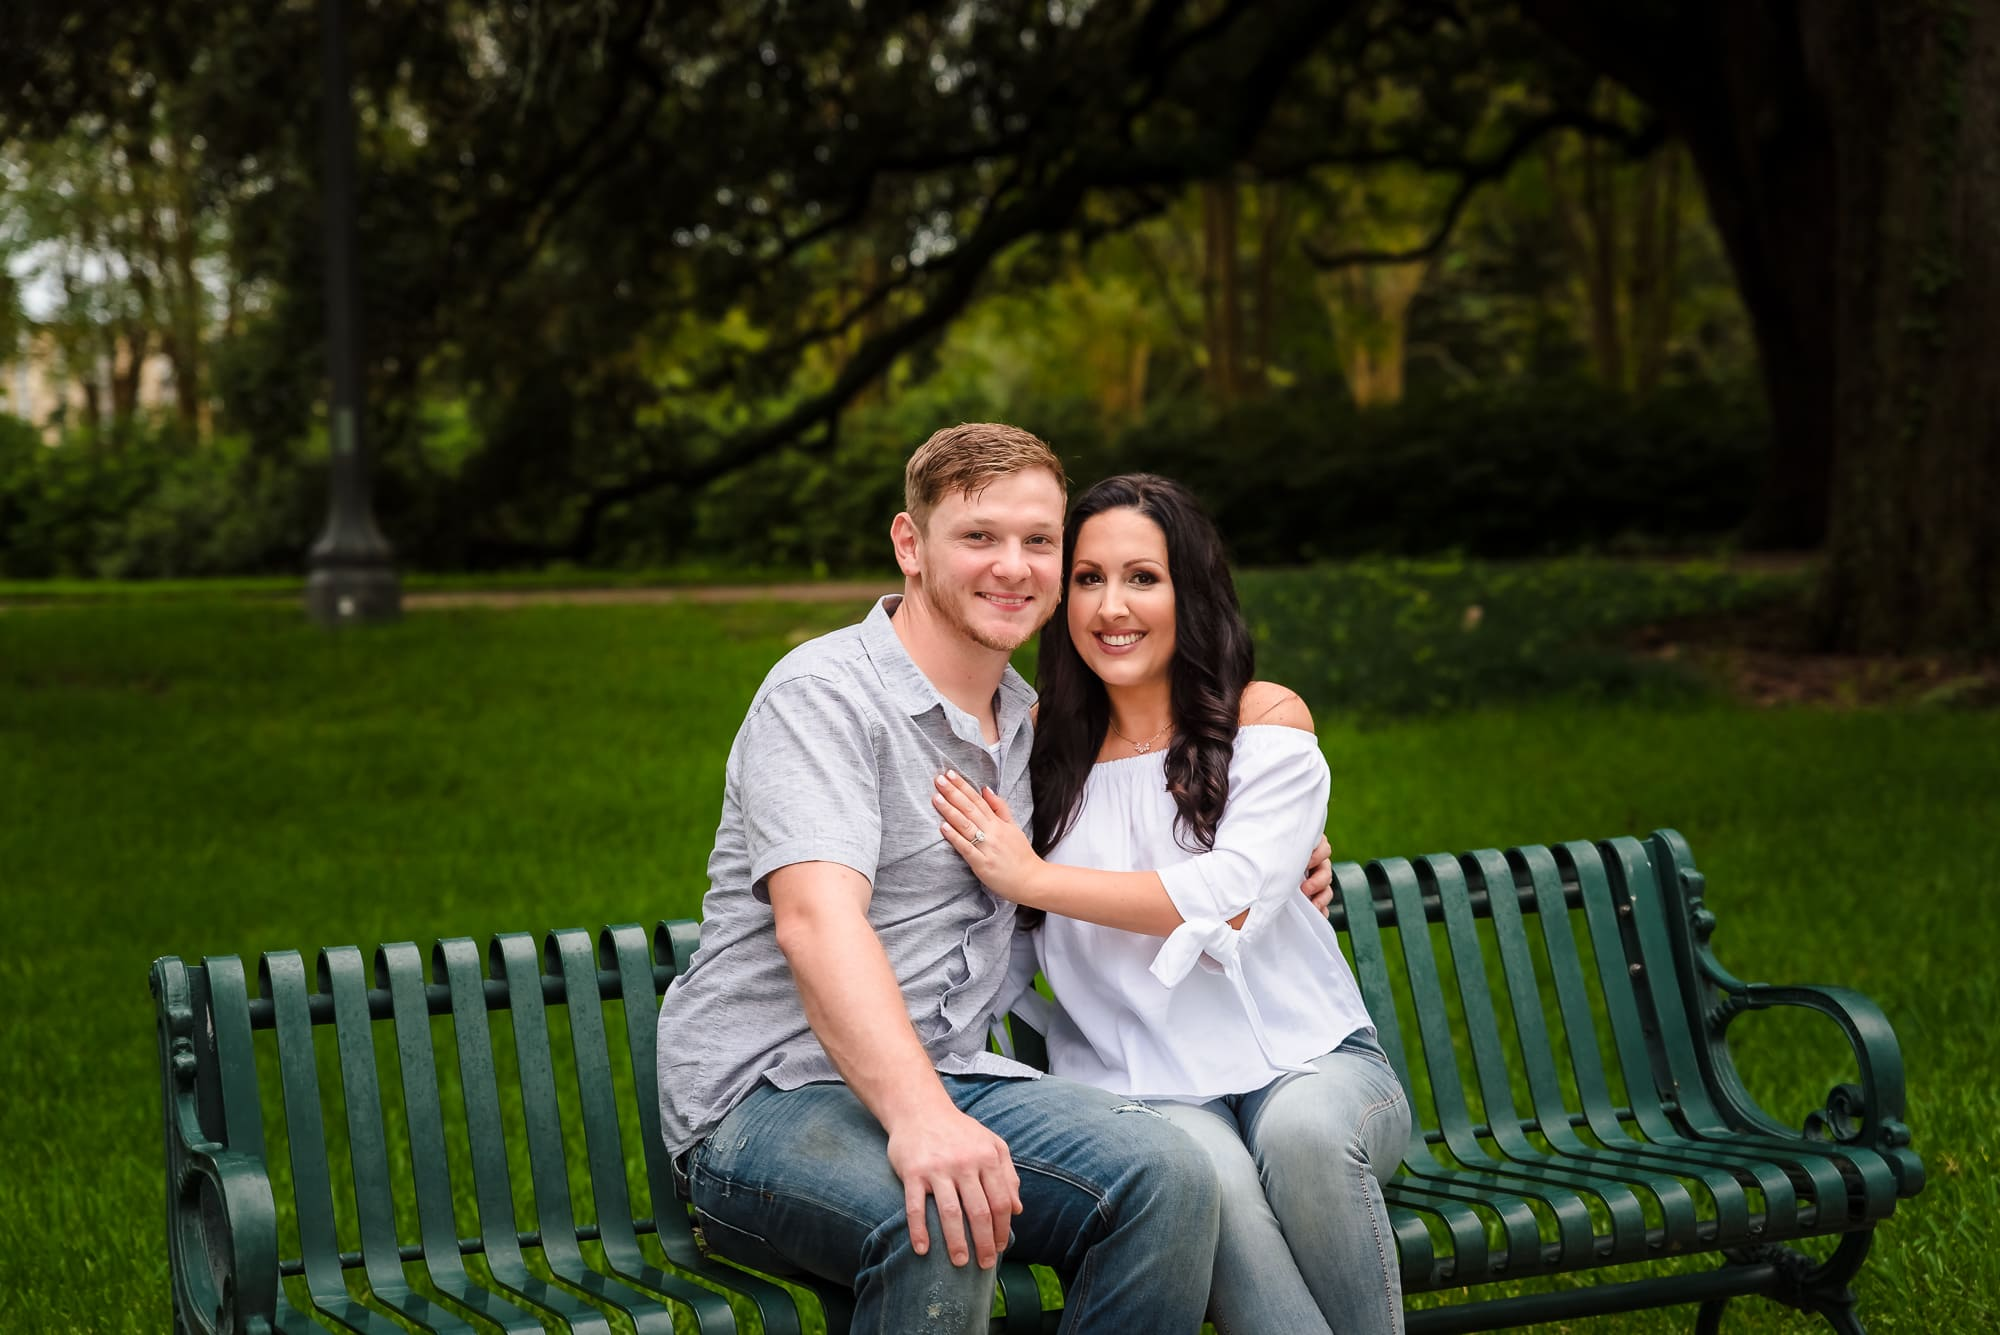 couple sitting on s bench